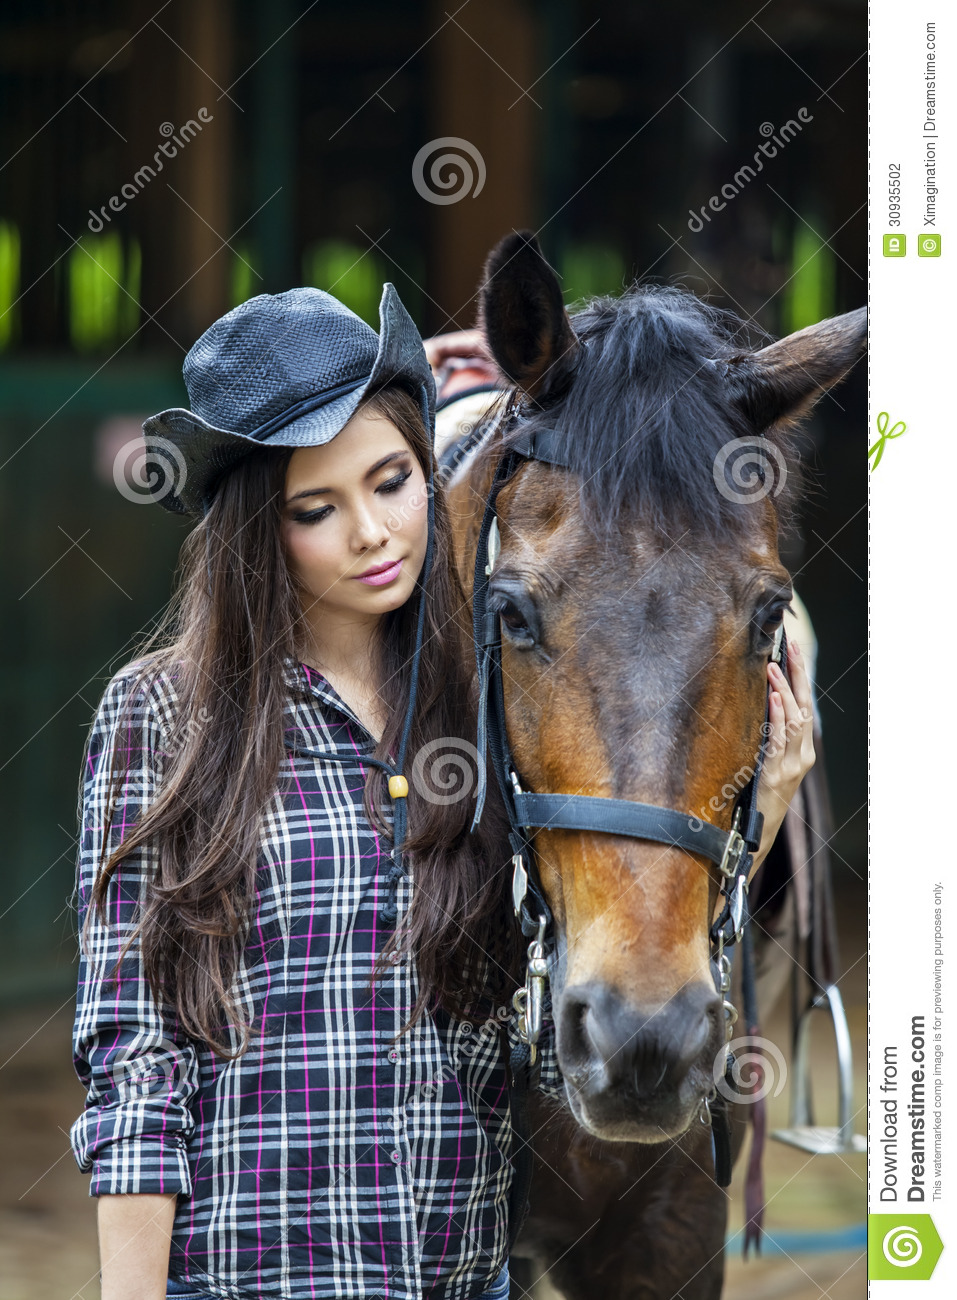 Attractive girl with horse